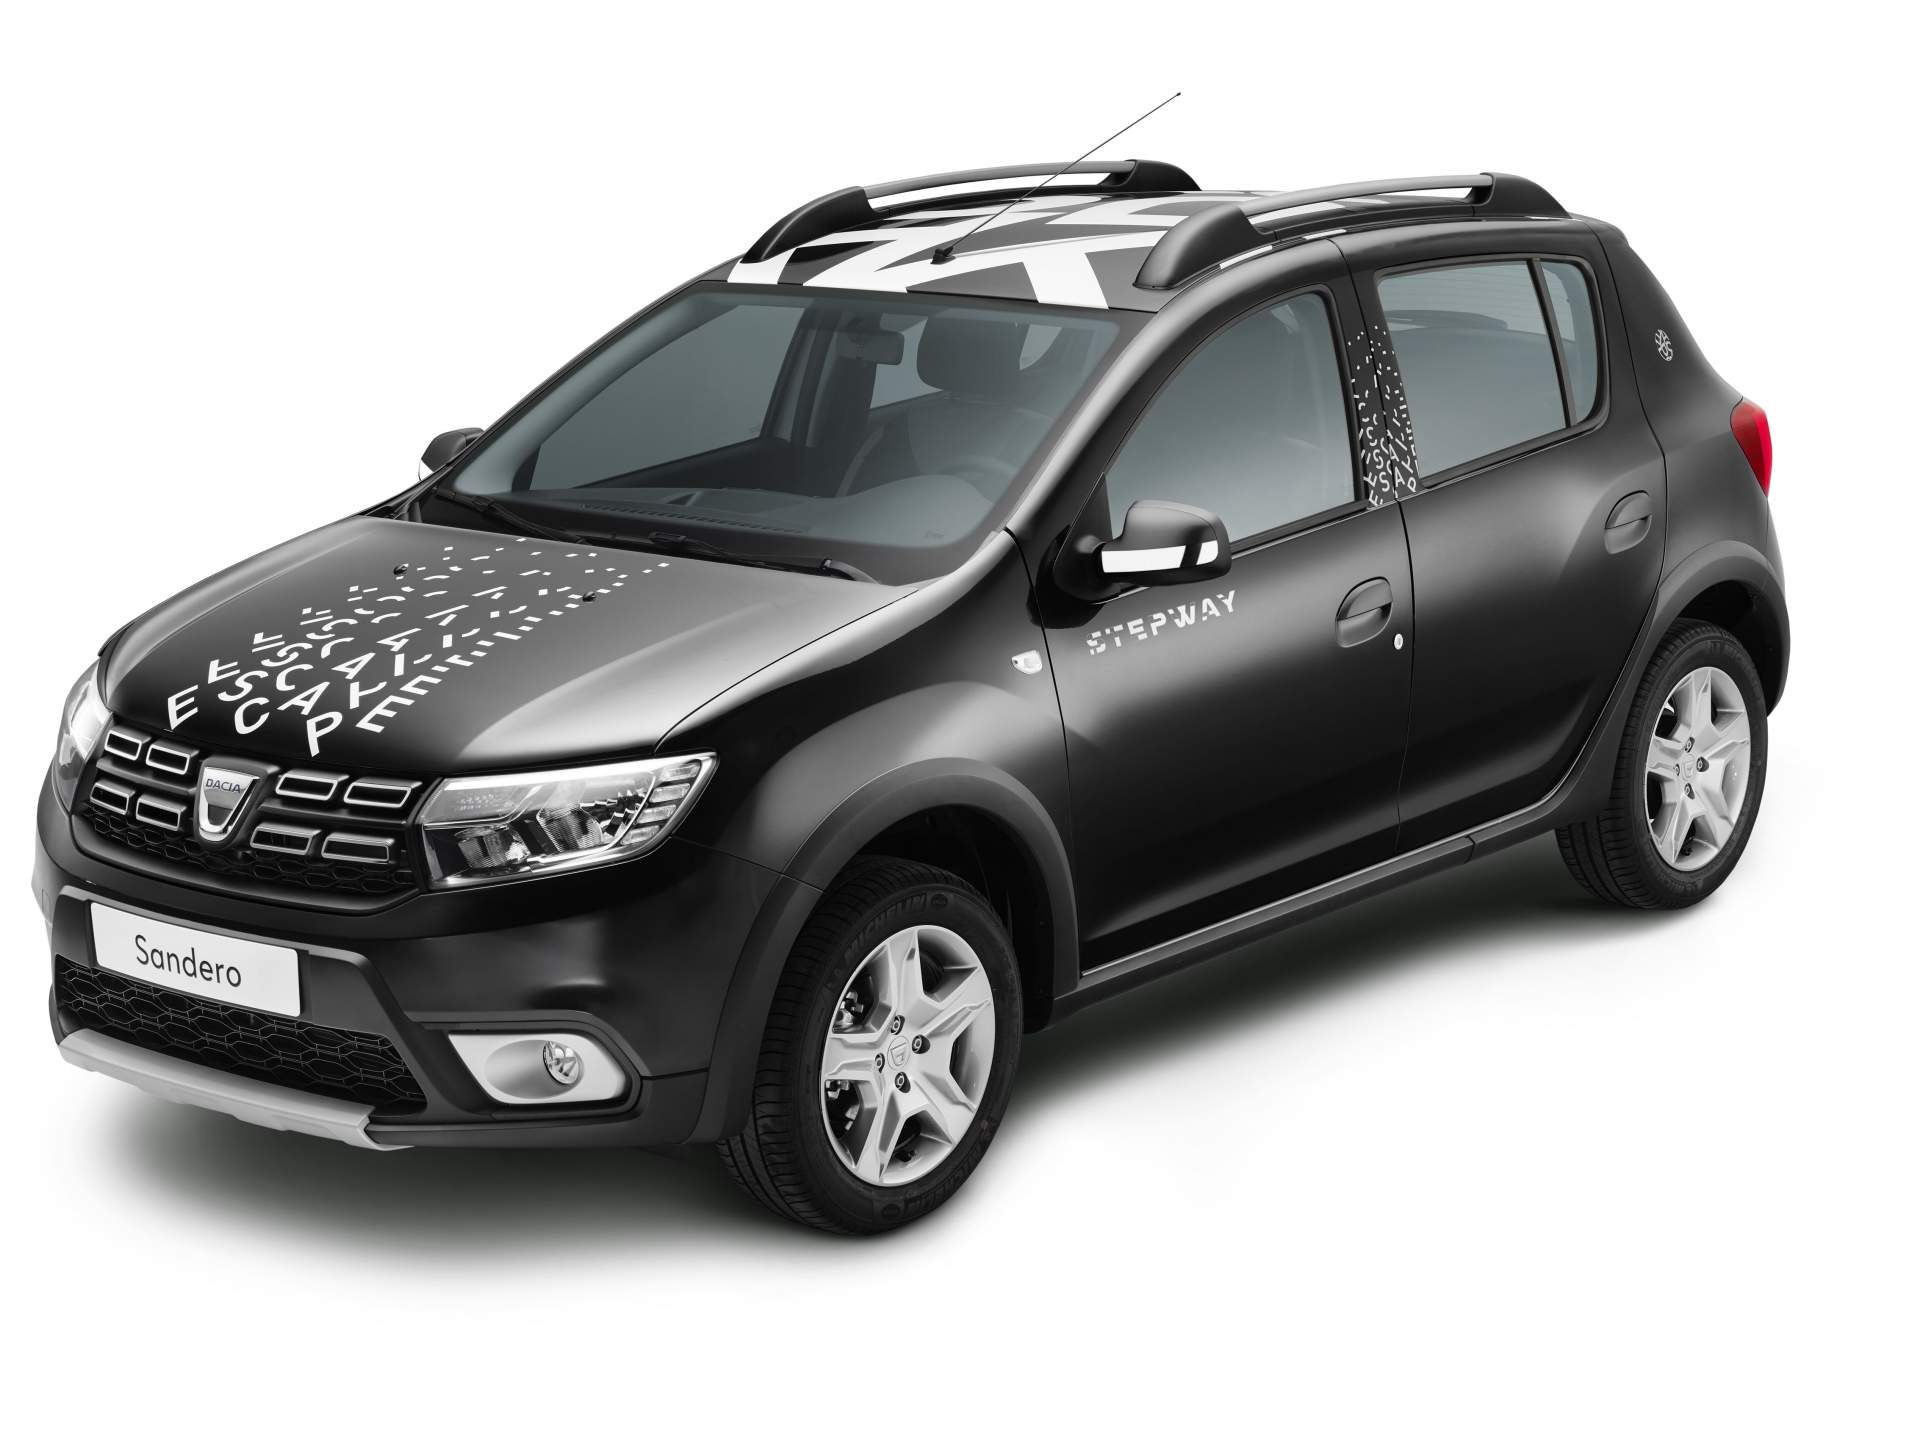 dacia sandero stepway escape limited to 400 examples. Black Bedroom Furniture Sets. Home Design Ideas